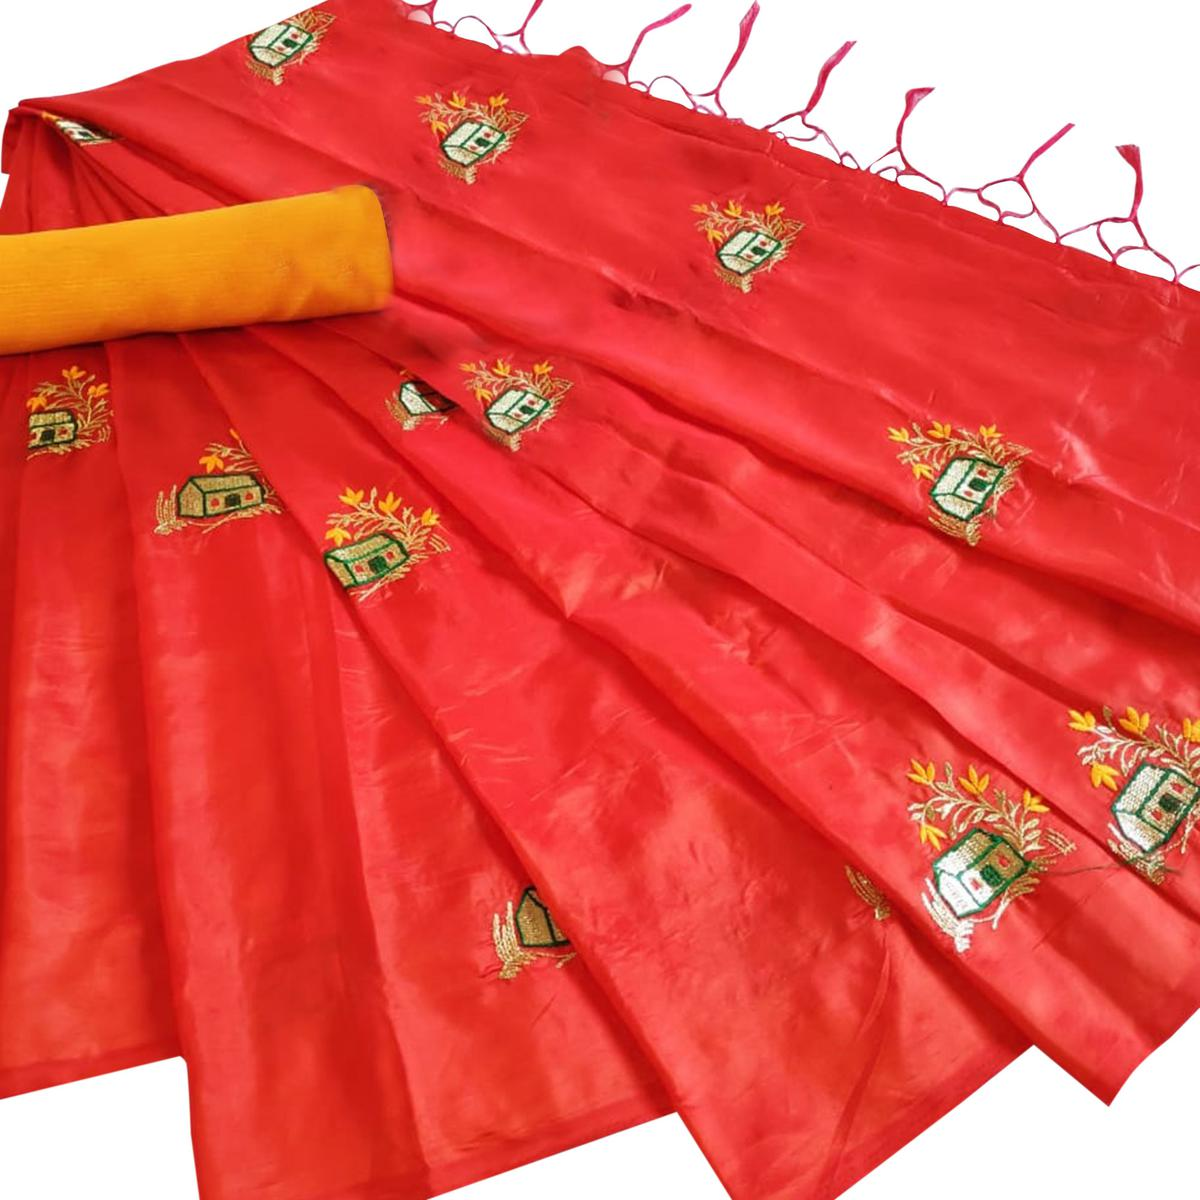 Desirable Orange Colored Party Wear Embroidered Paper Silk Saree